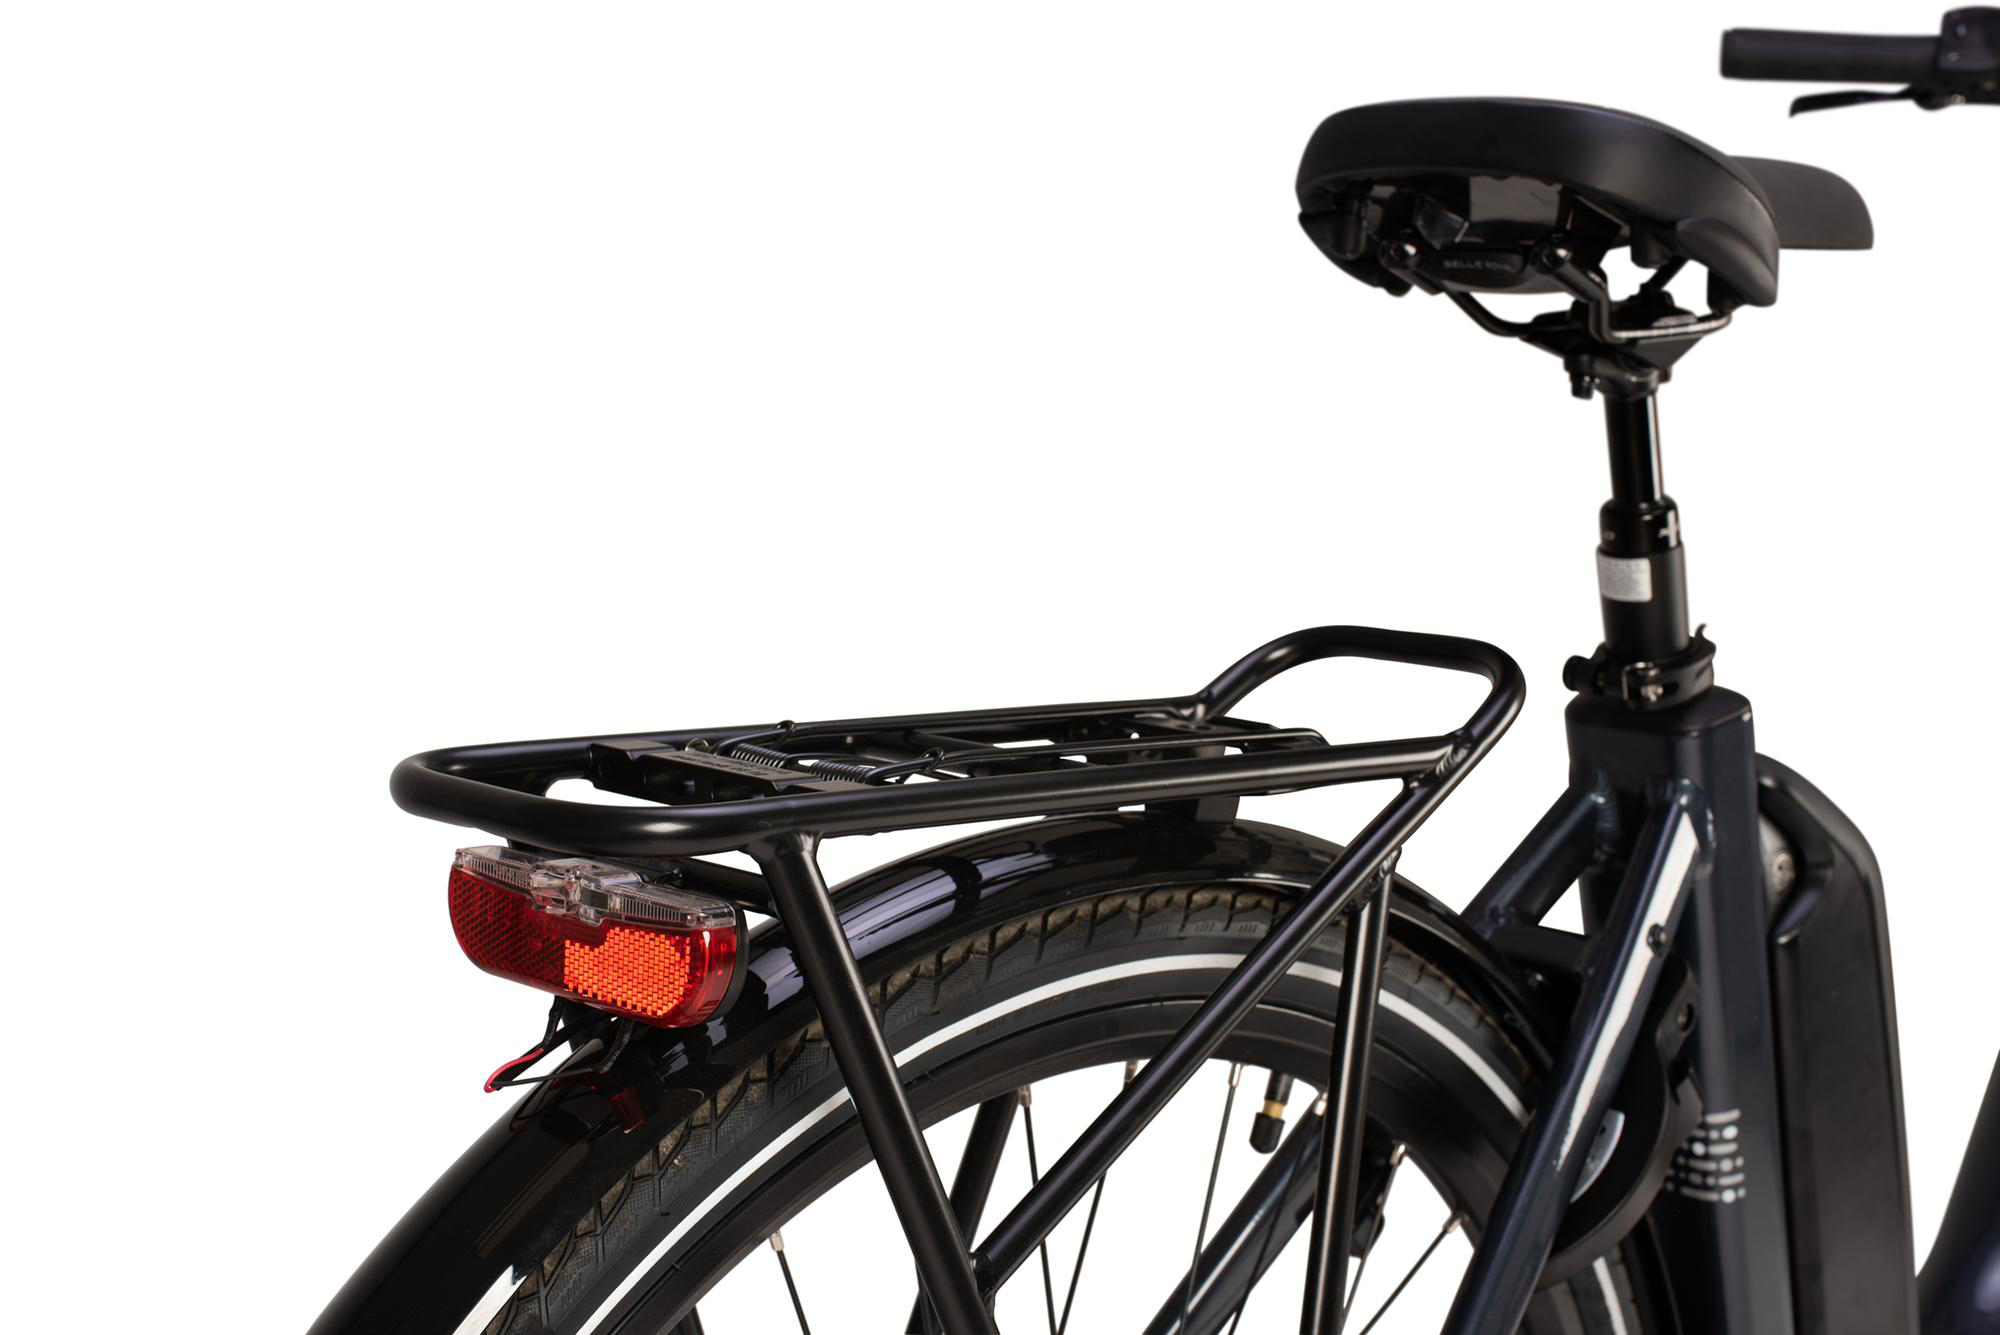 Rear luggage rack on the Raleigh Motus low step electric bike